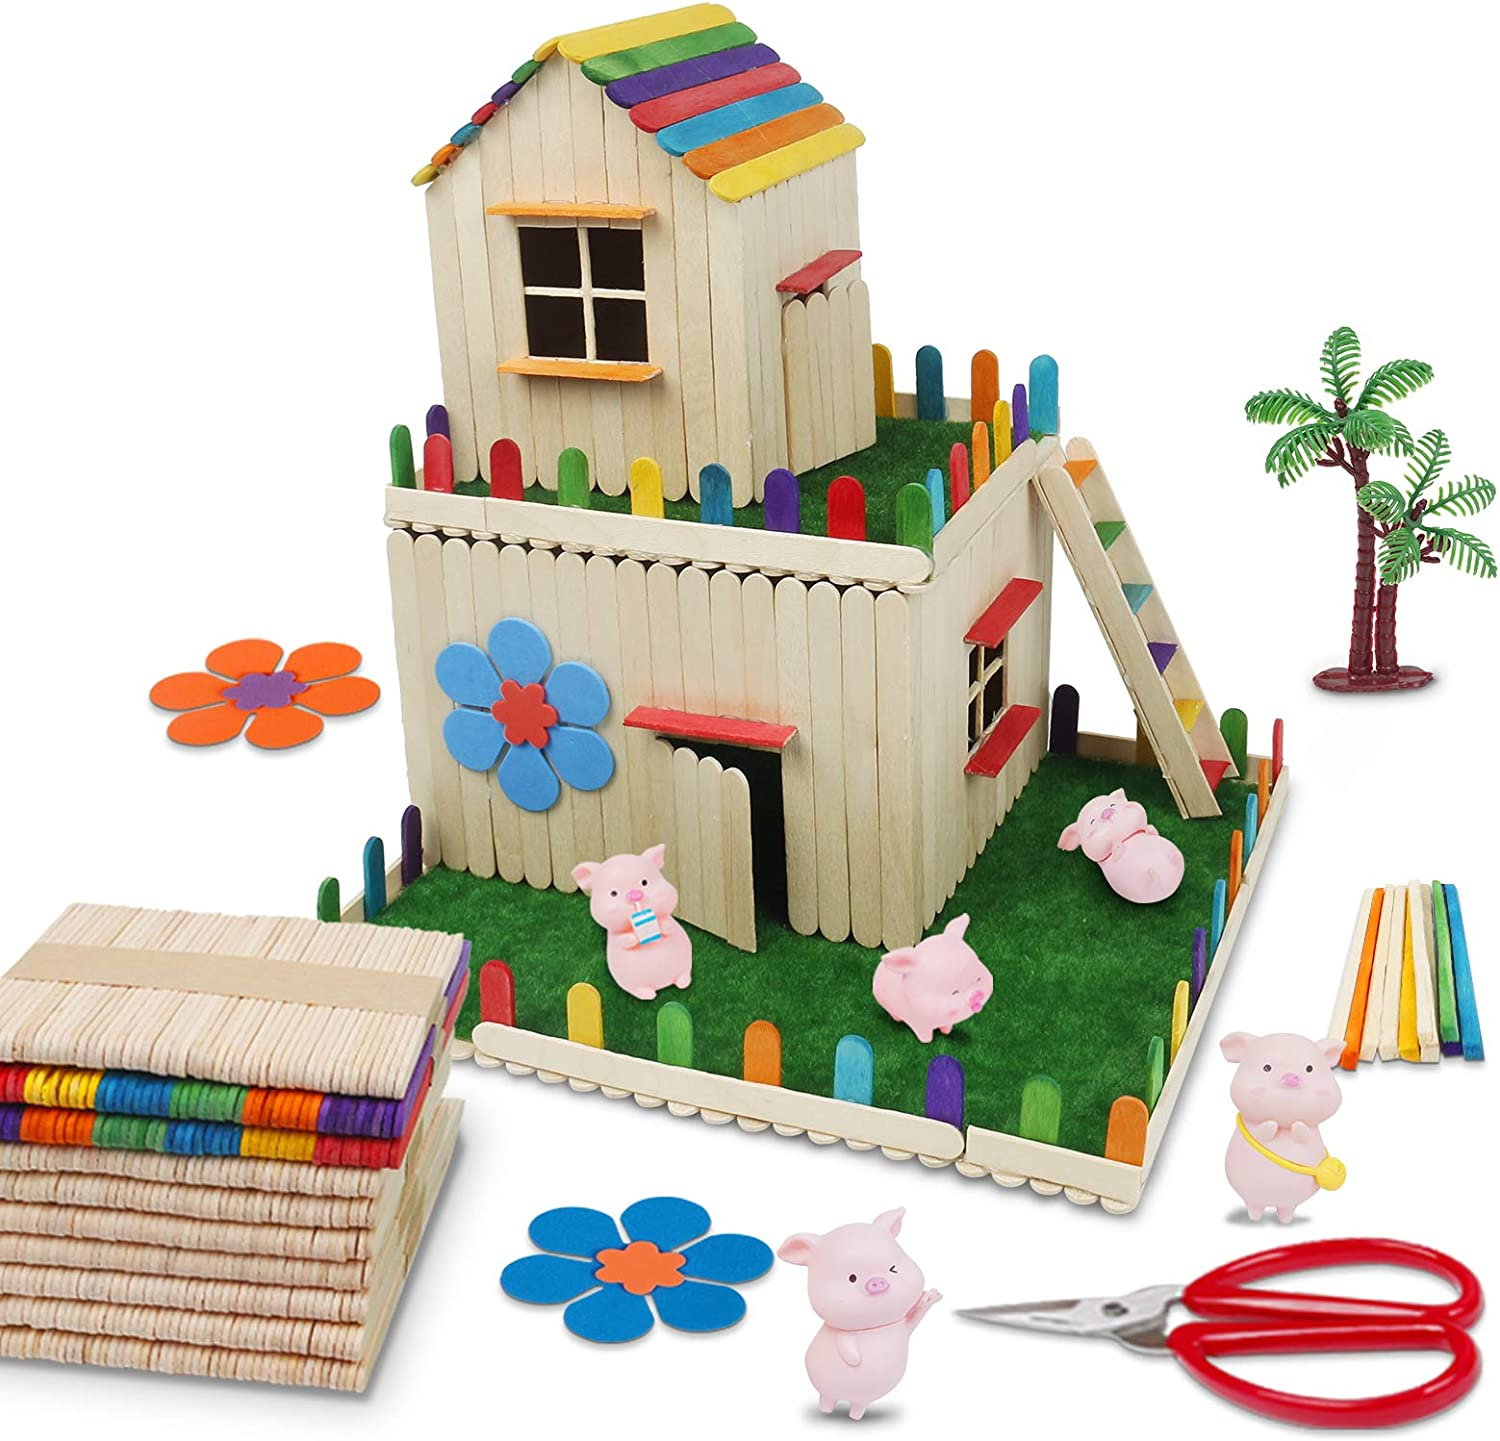 DIY Popsicle Stick House Kit with Garden Wooden House,Craft Sticks for Kids with Pig (Pig)